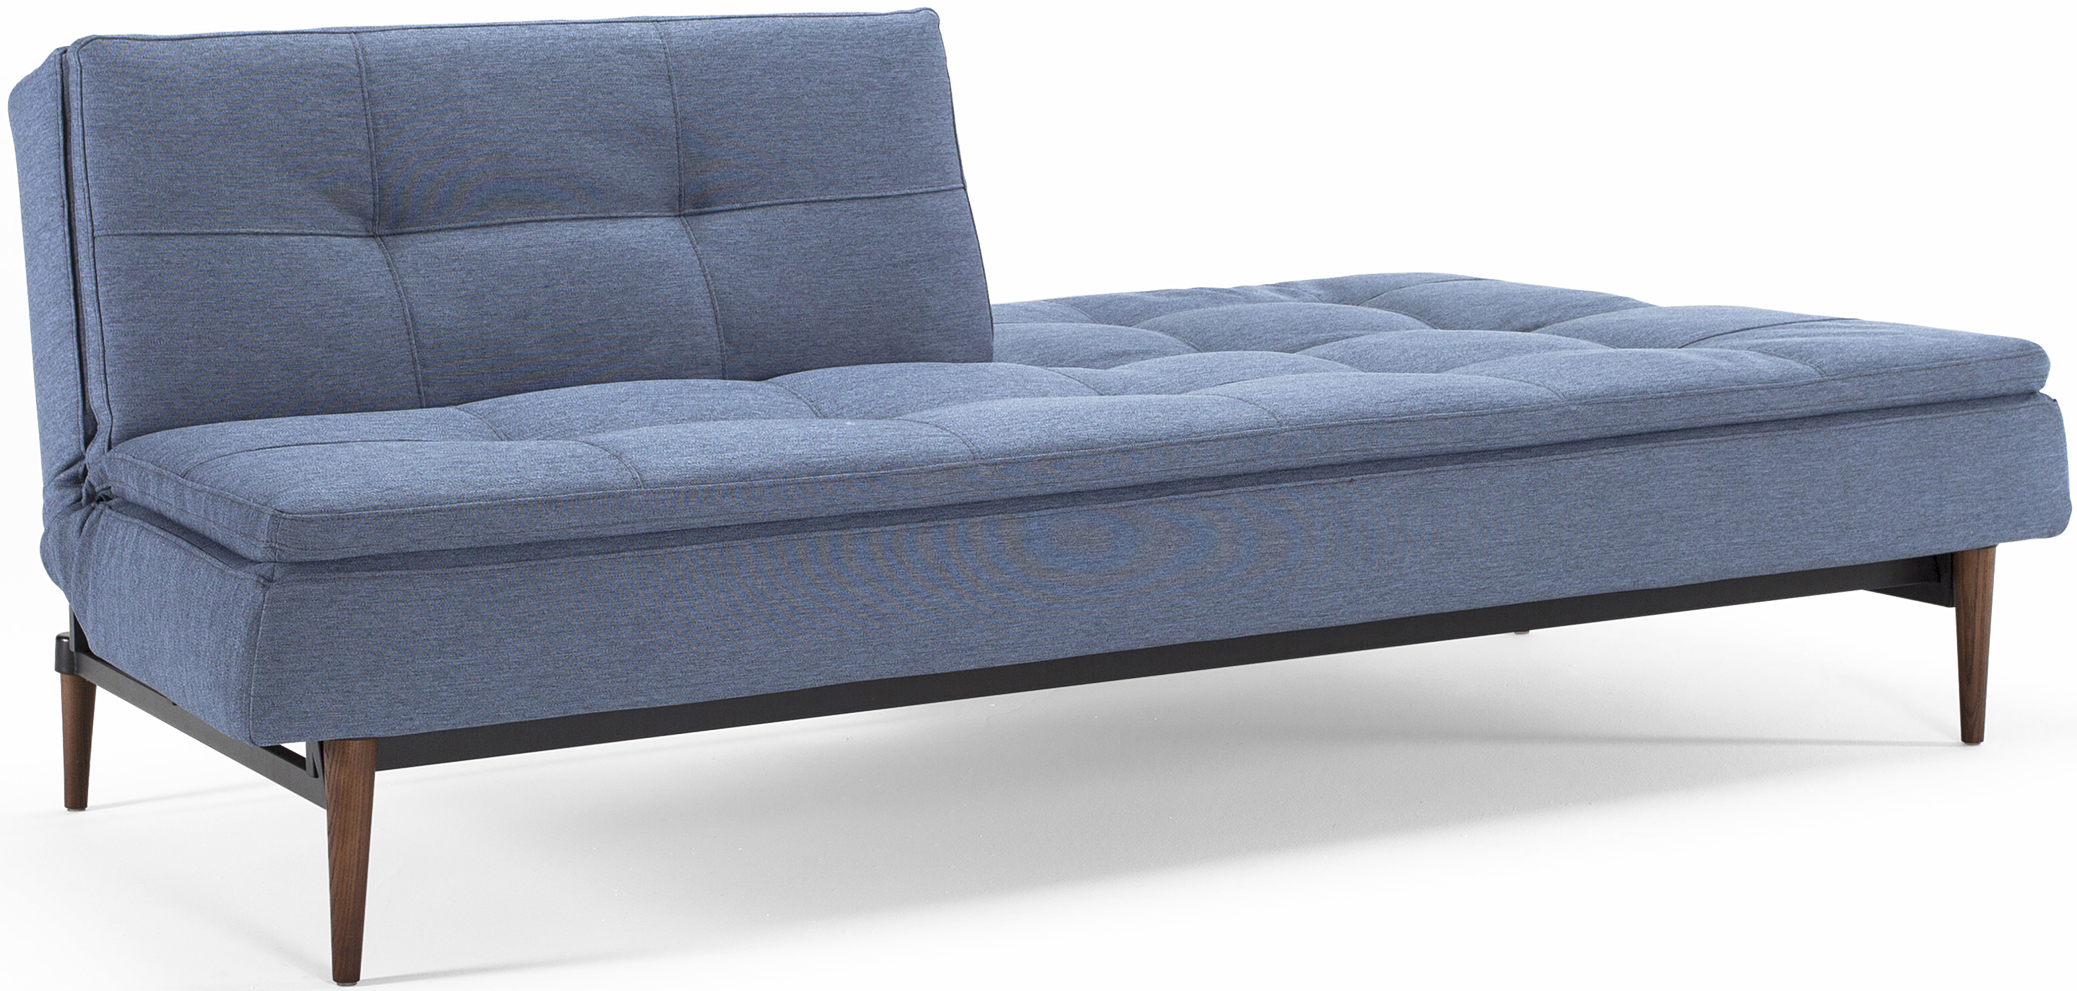 the dublexo sofa in indigo blue